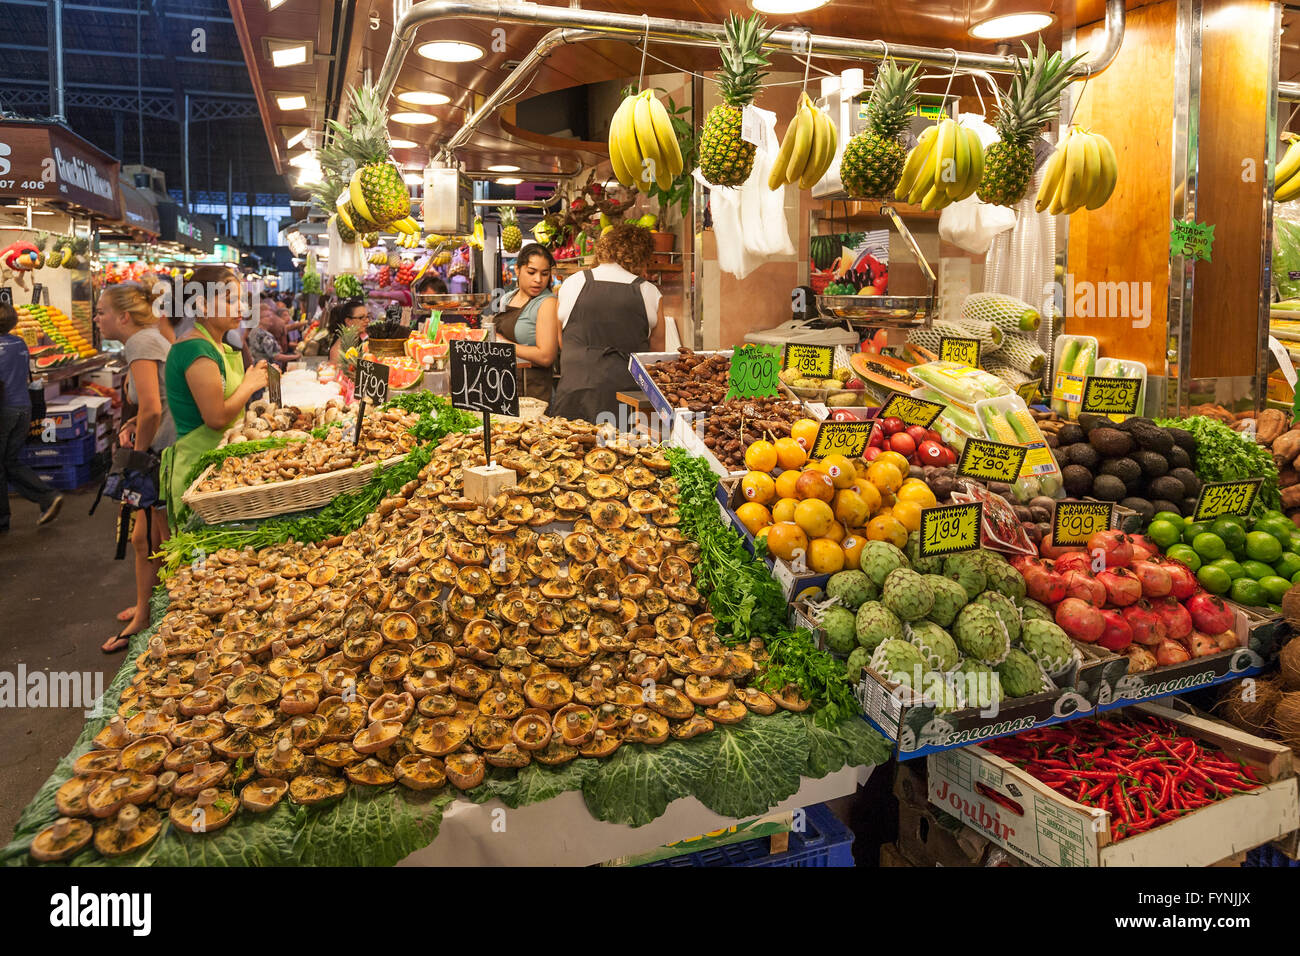 Fruits and vegetables,  Mercat de Sant Josep, Boqueria market, La Rambla, , Barcelona, Spain Stock Photo